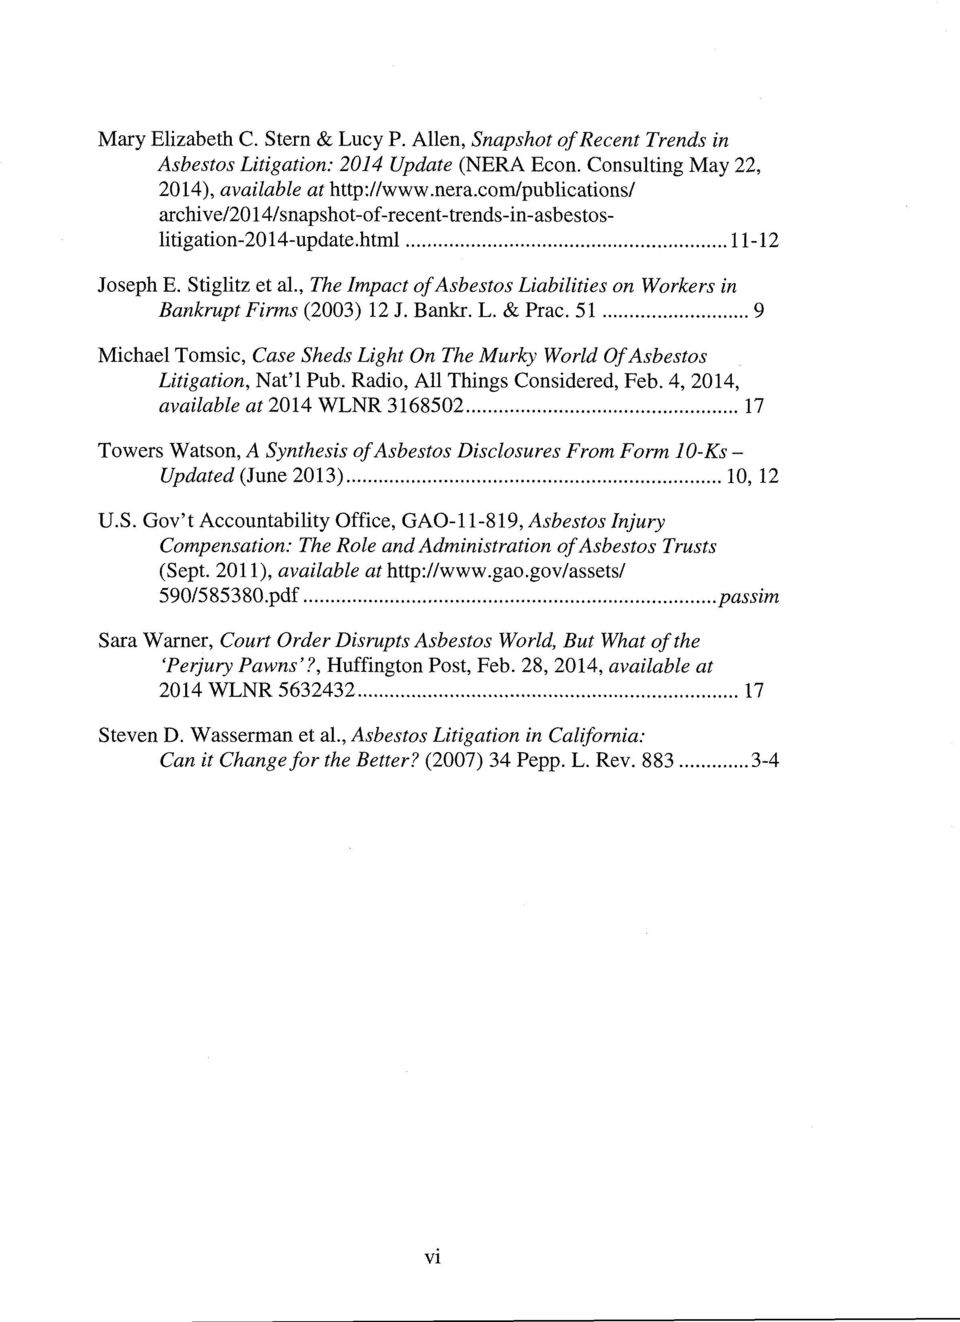 , The Impact of Asbestos Liabilities on Workers in Bankrupt Firms (2003) 12 J. Bankr. L. & Prac. 51 9 Michael Tomsic, Case Sheds Light On The Murky World Of Asbestos Litigation, Nat'l Pub.